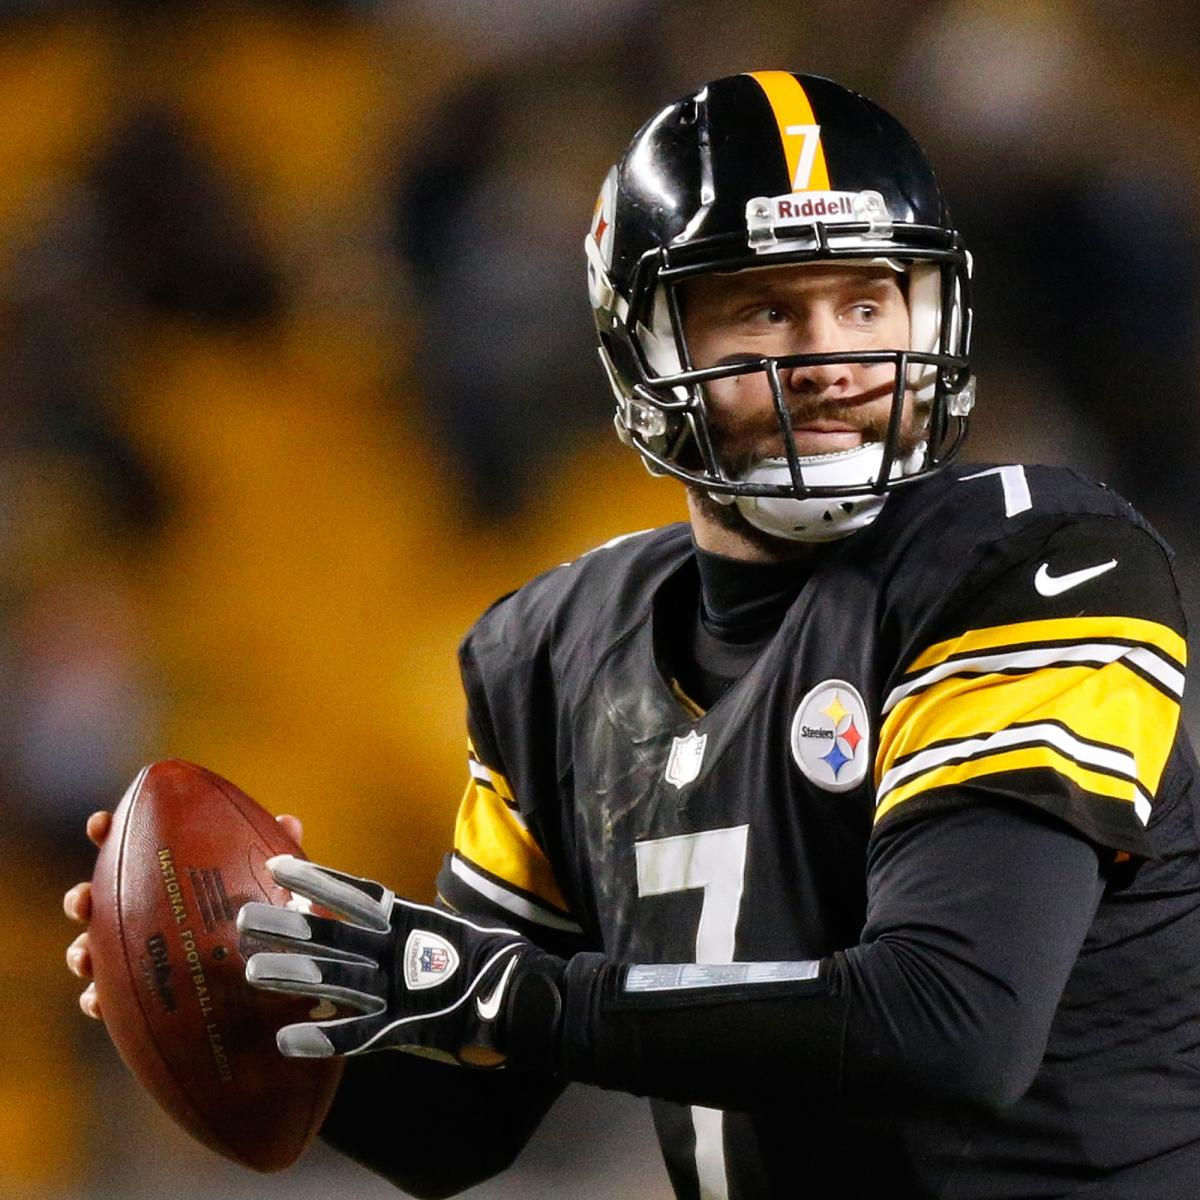 The Green Bay Packers and Pittsburgh Steelers won wild card playoff games son Sunday